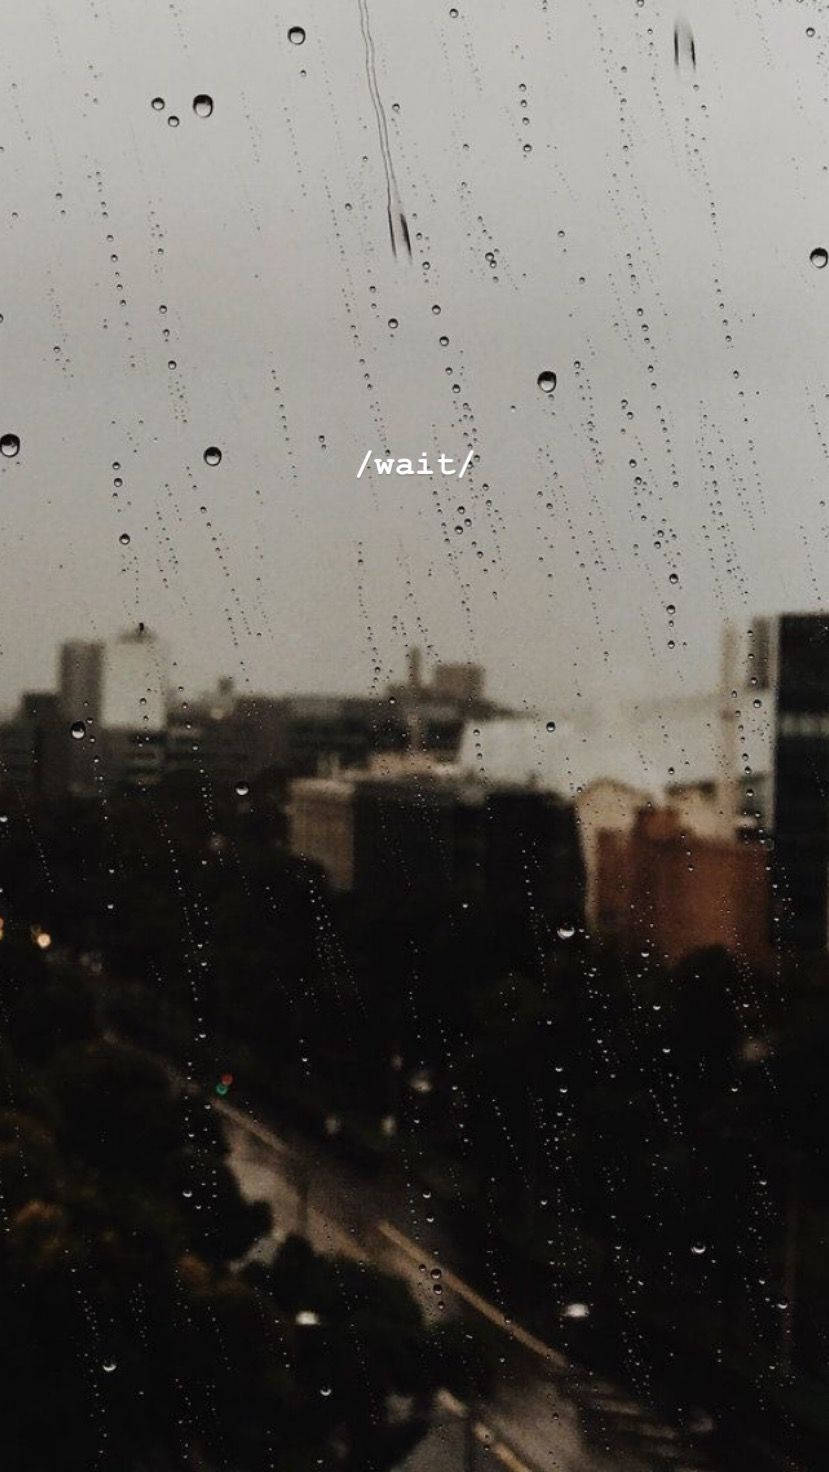 Aesthetic Rain Wallpapers   Top Aesthetic Rain Backgrounds 829x1472